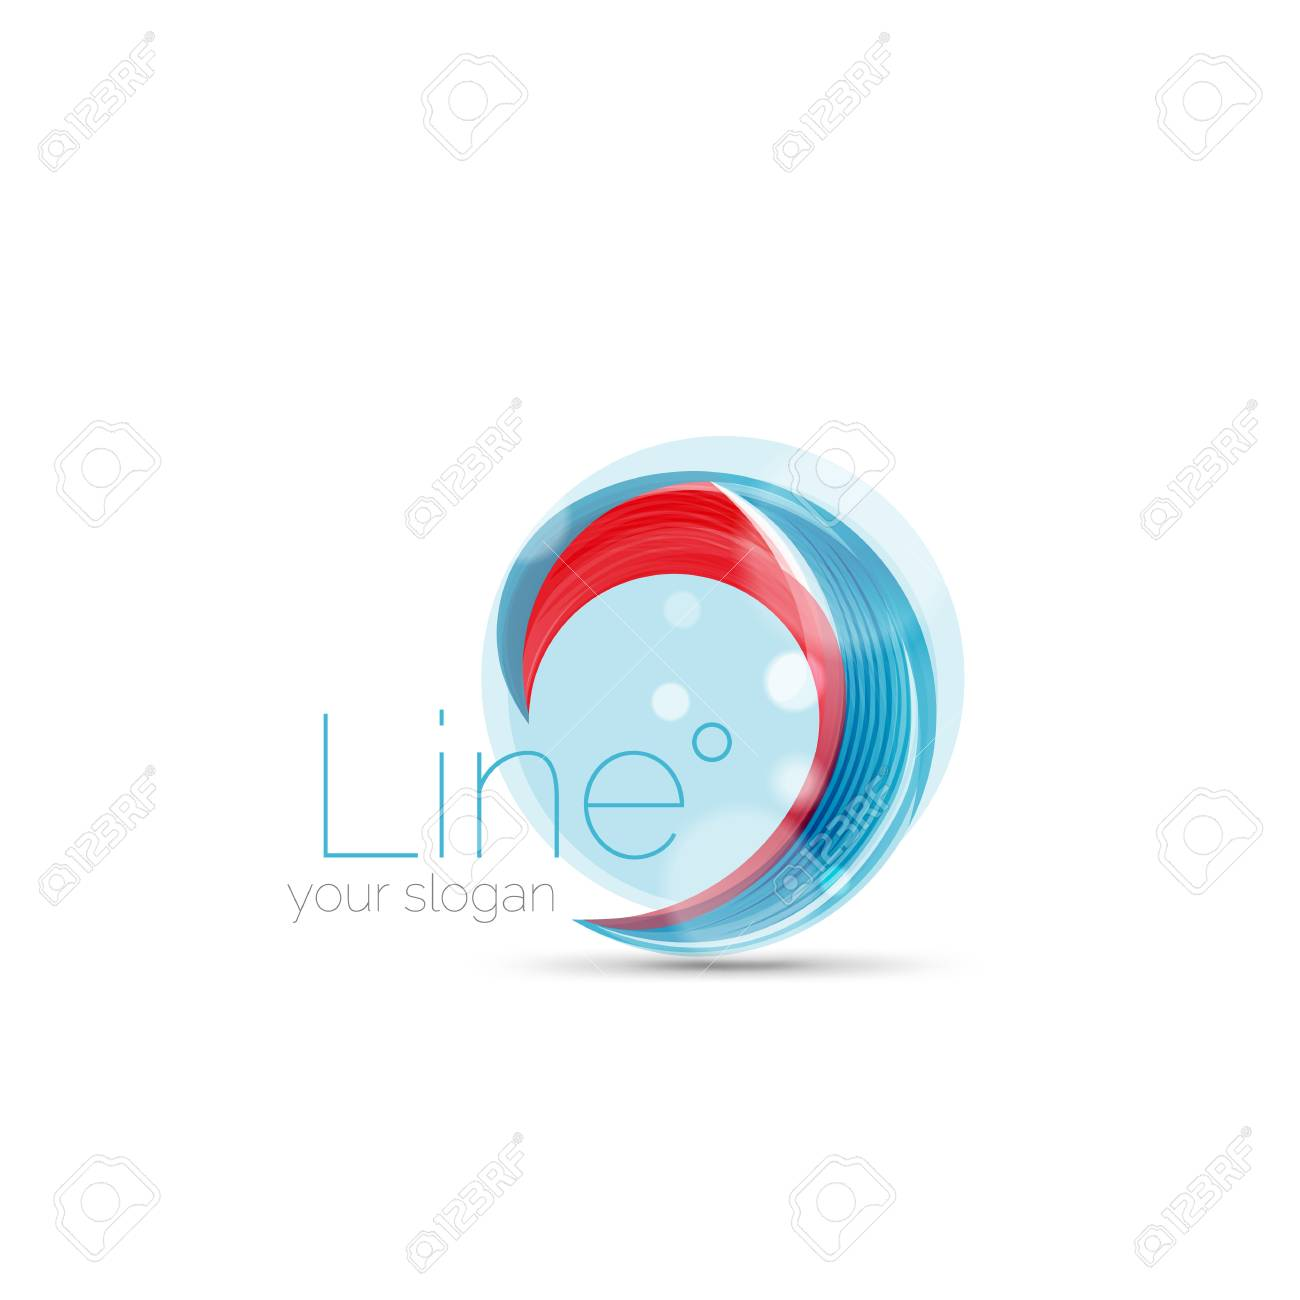 swirl blue red company logo design universal for all ideas and